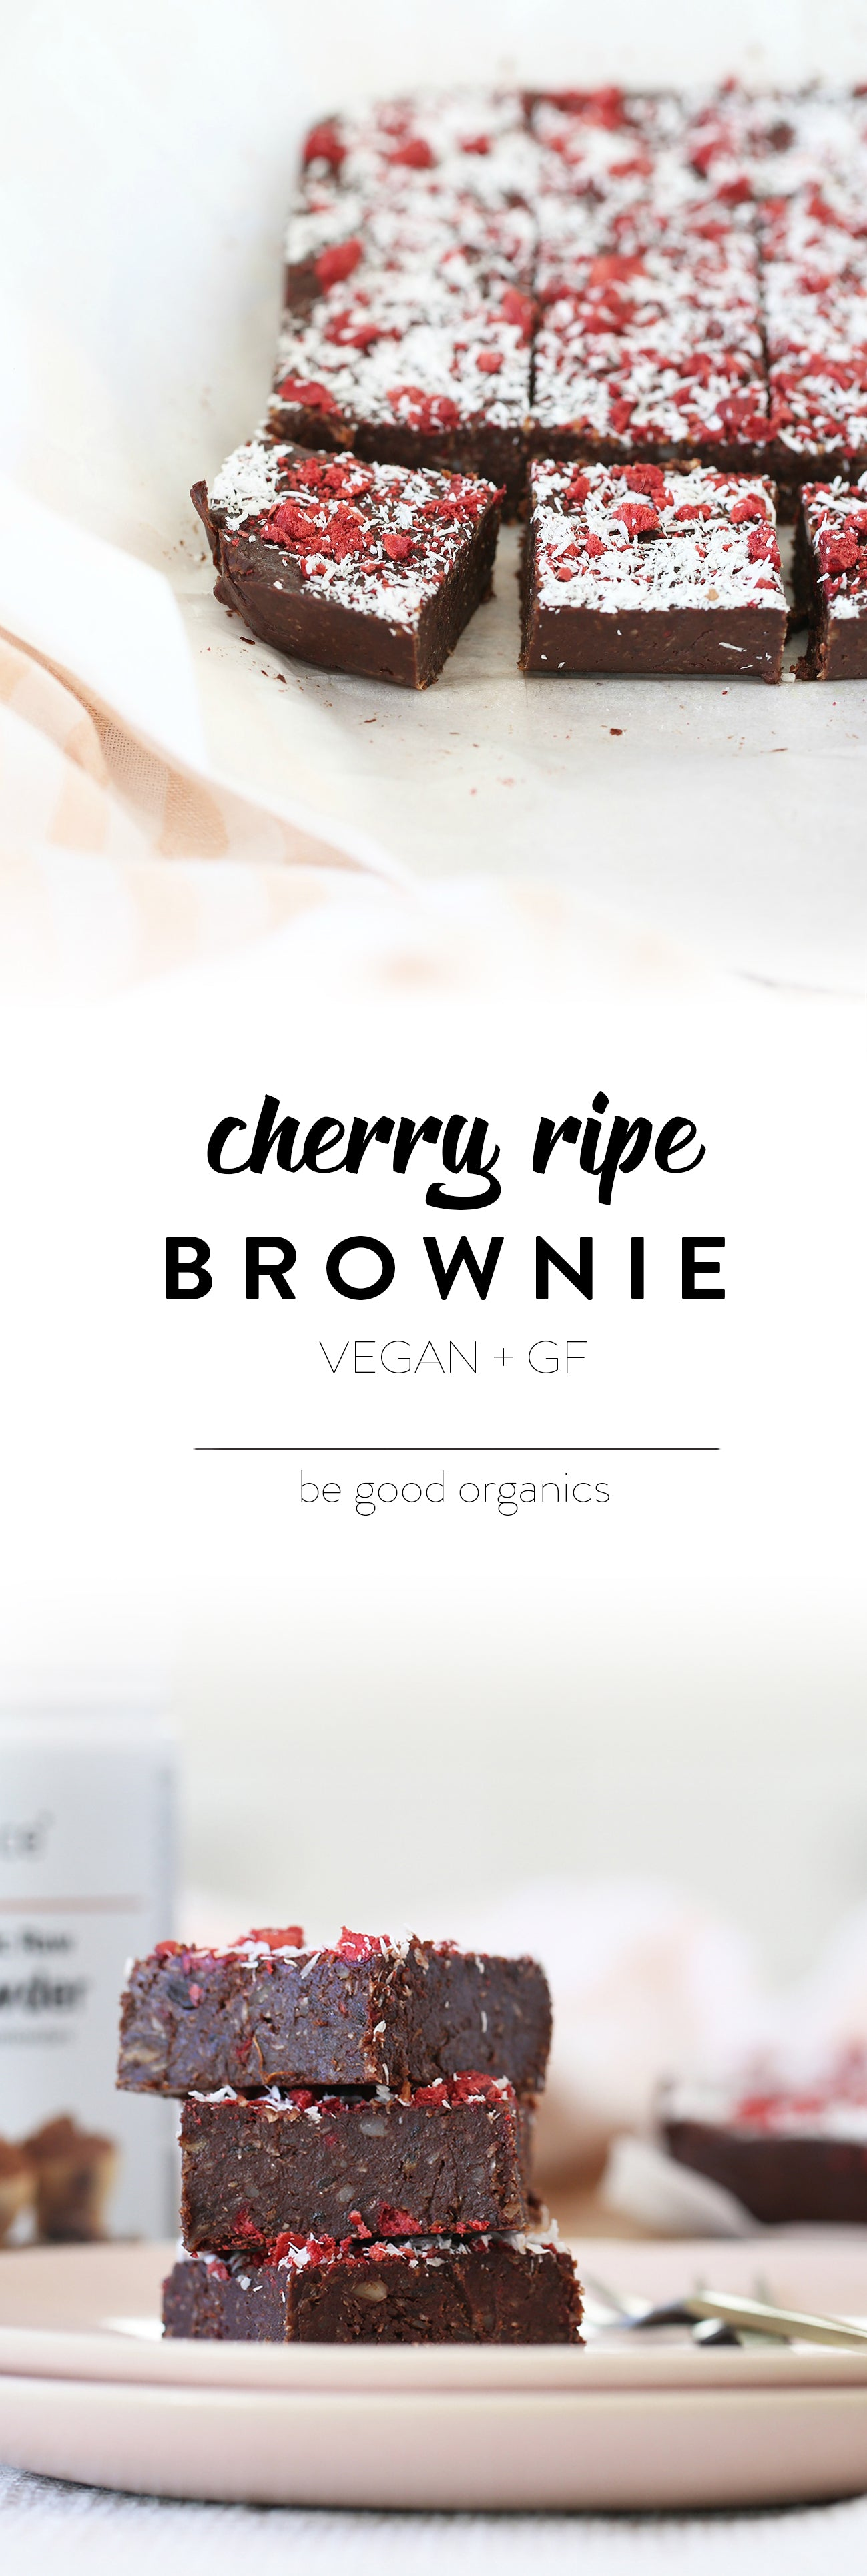 Cherry Ripe Brownie - Be Good Organics